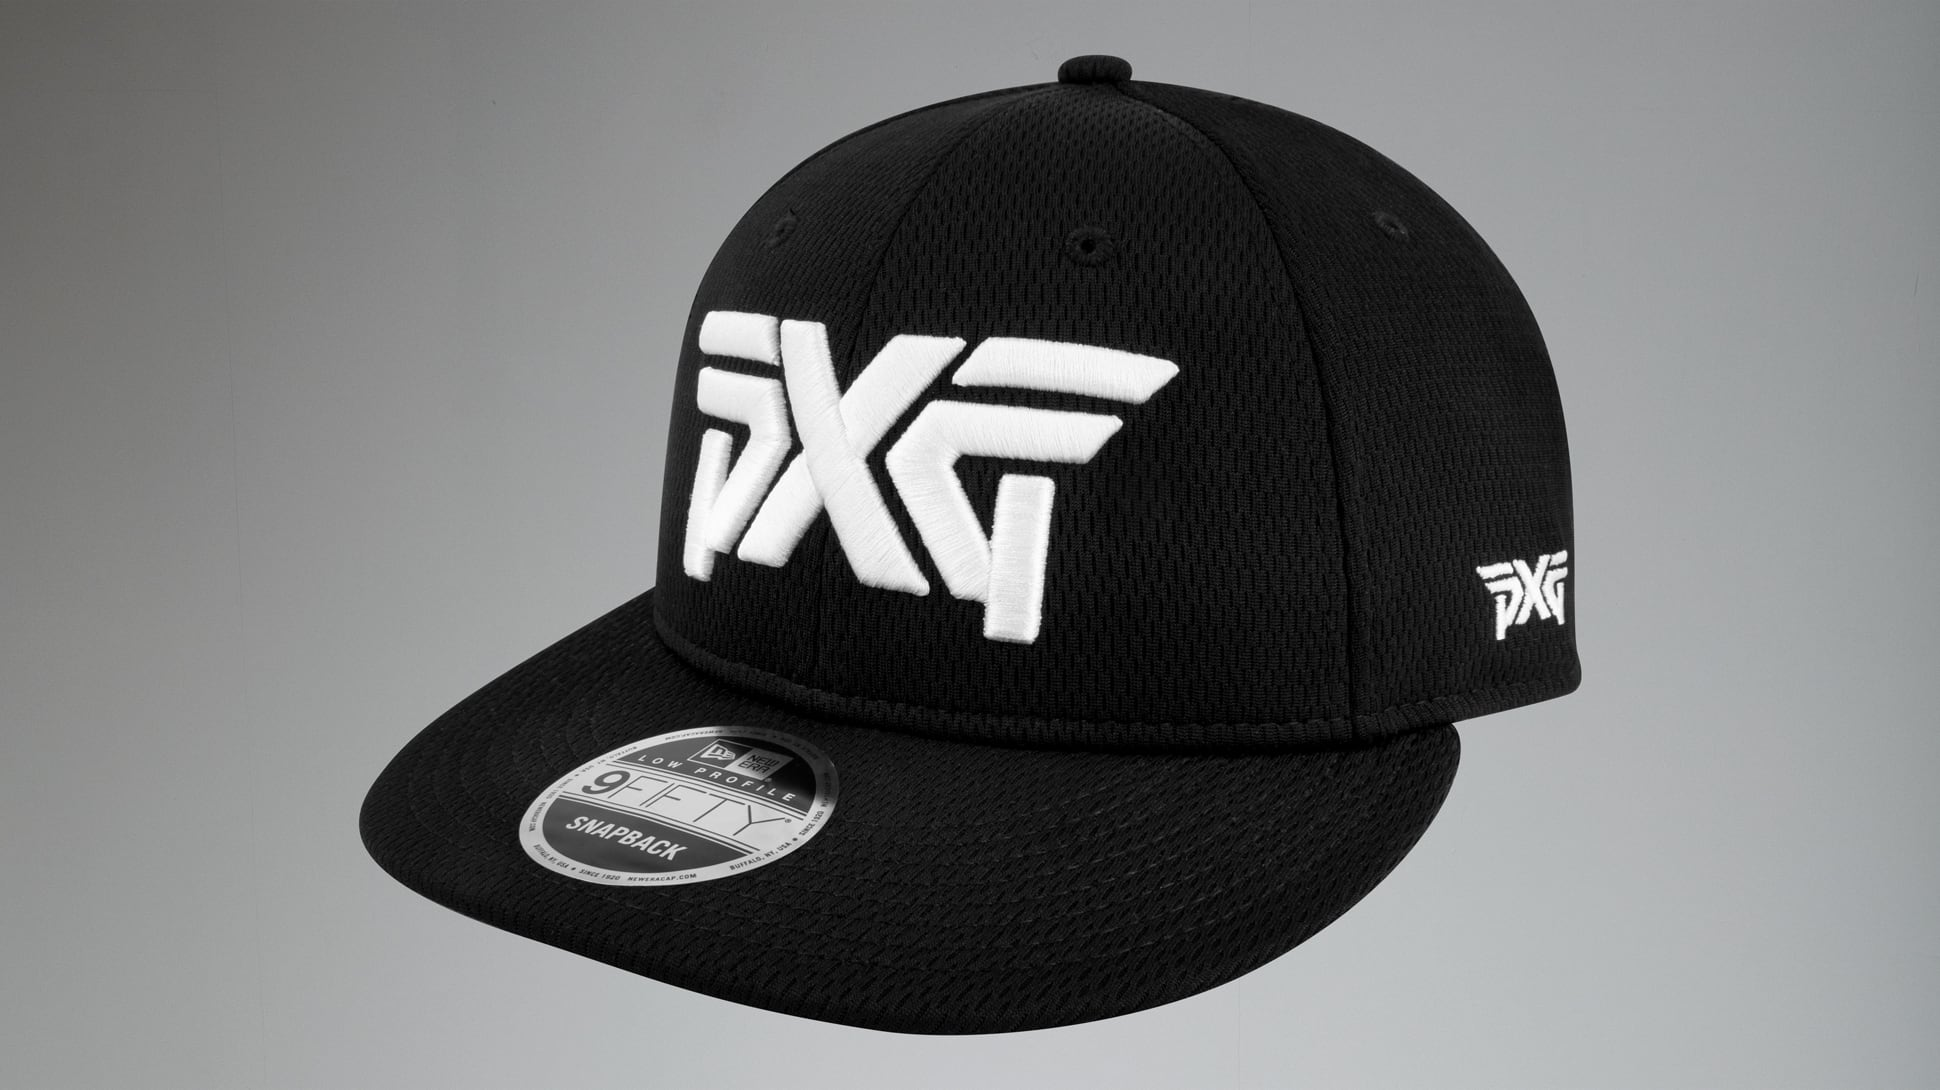 Performance Line 9FIFTY Low Profile Cap Image 0